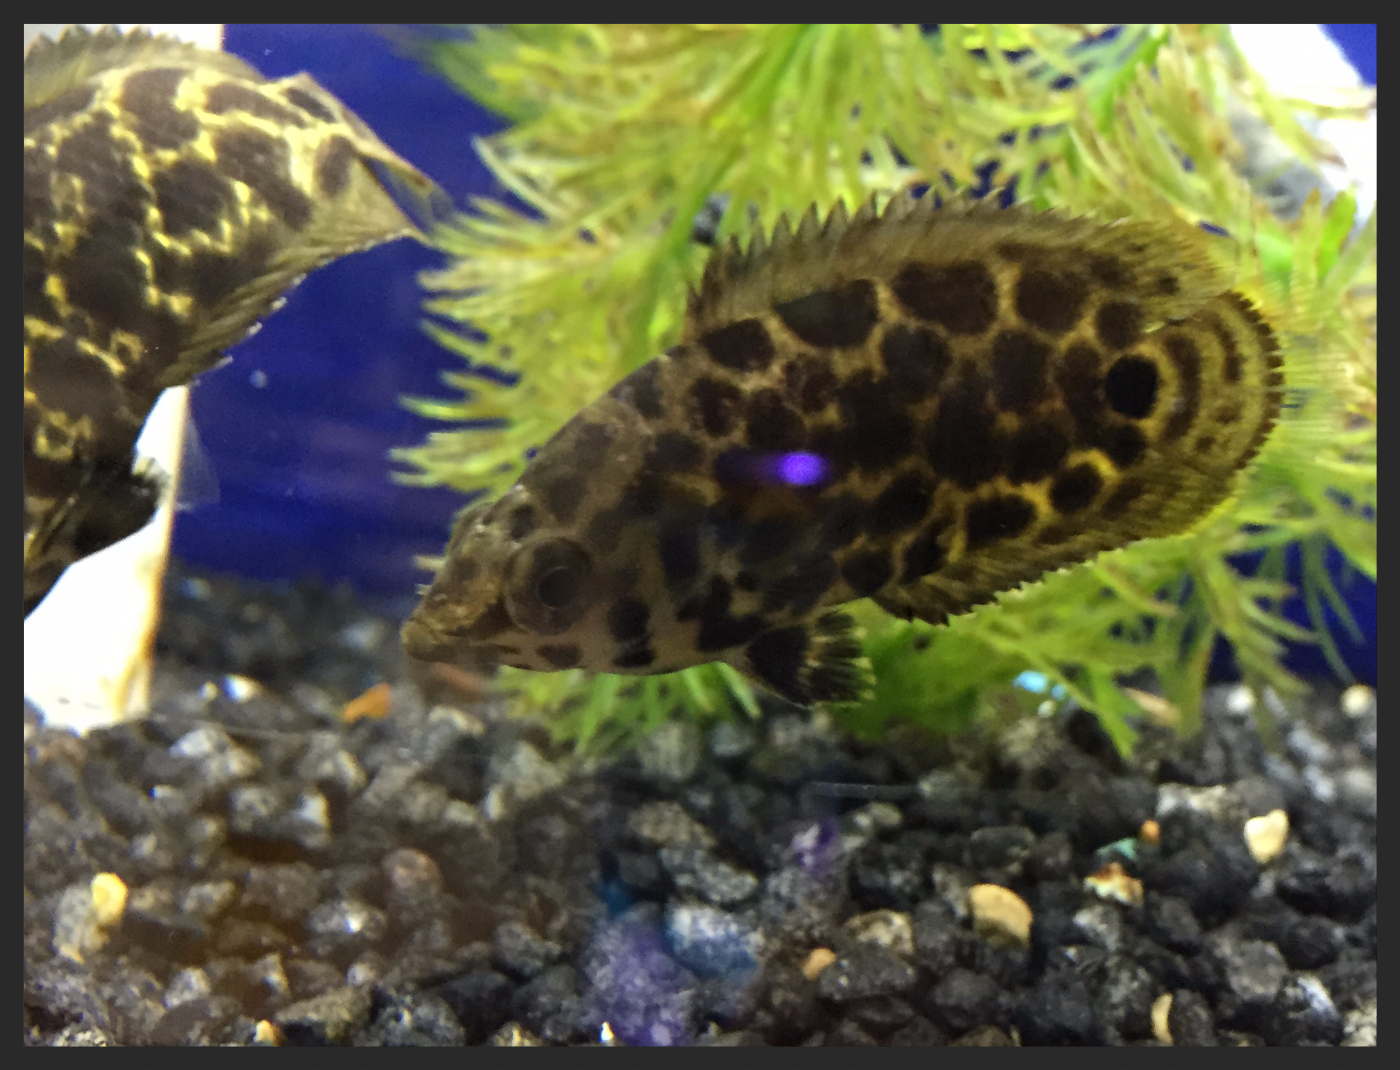 Freshwater aquarium fish store near me - Fish Of The Month Spotted Leaf Fish